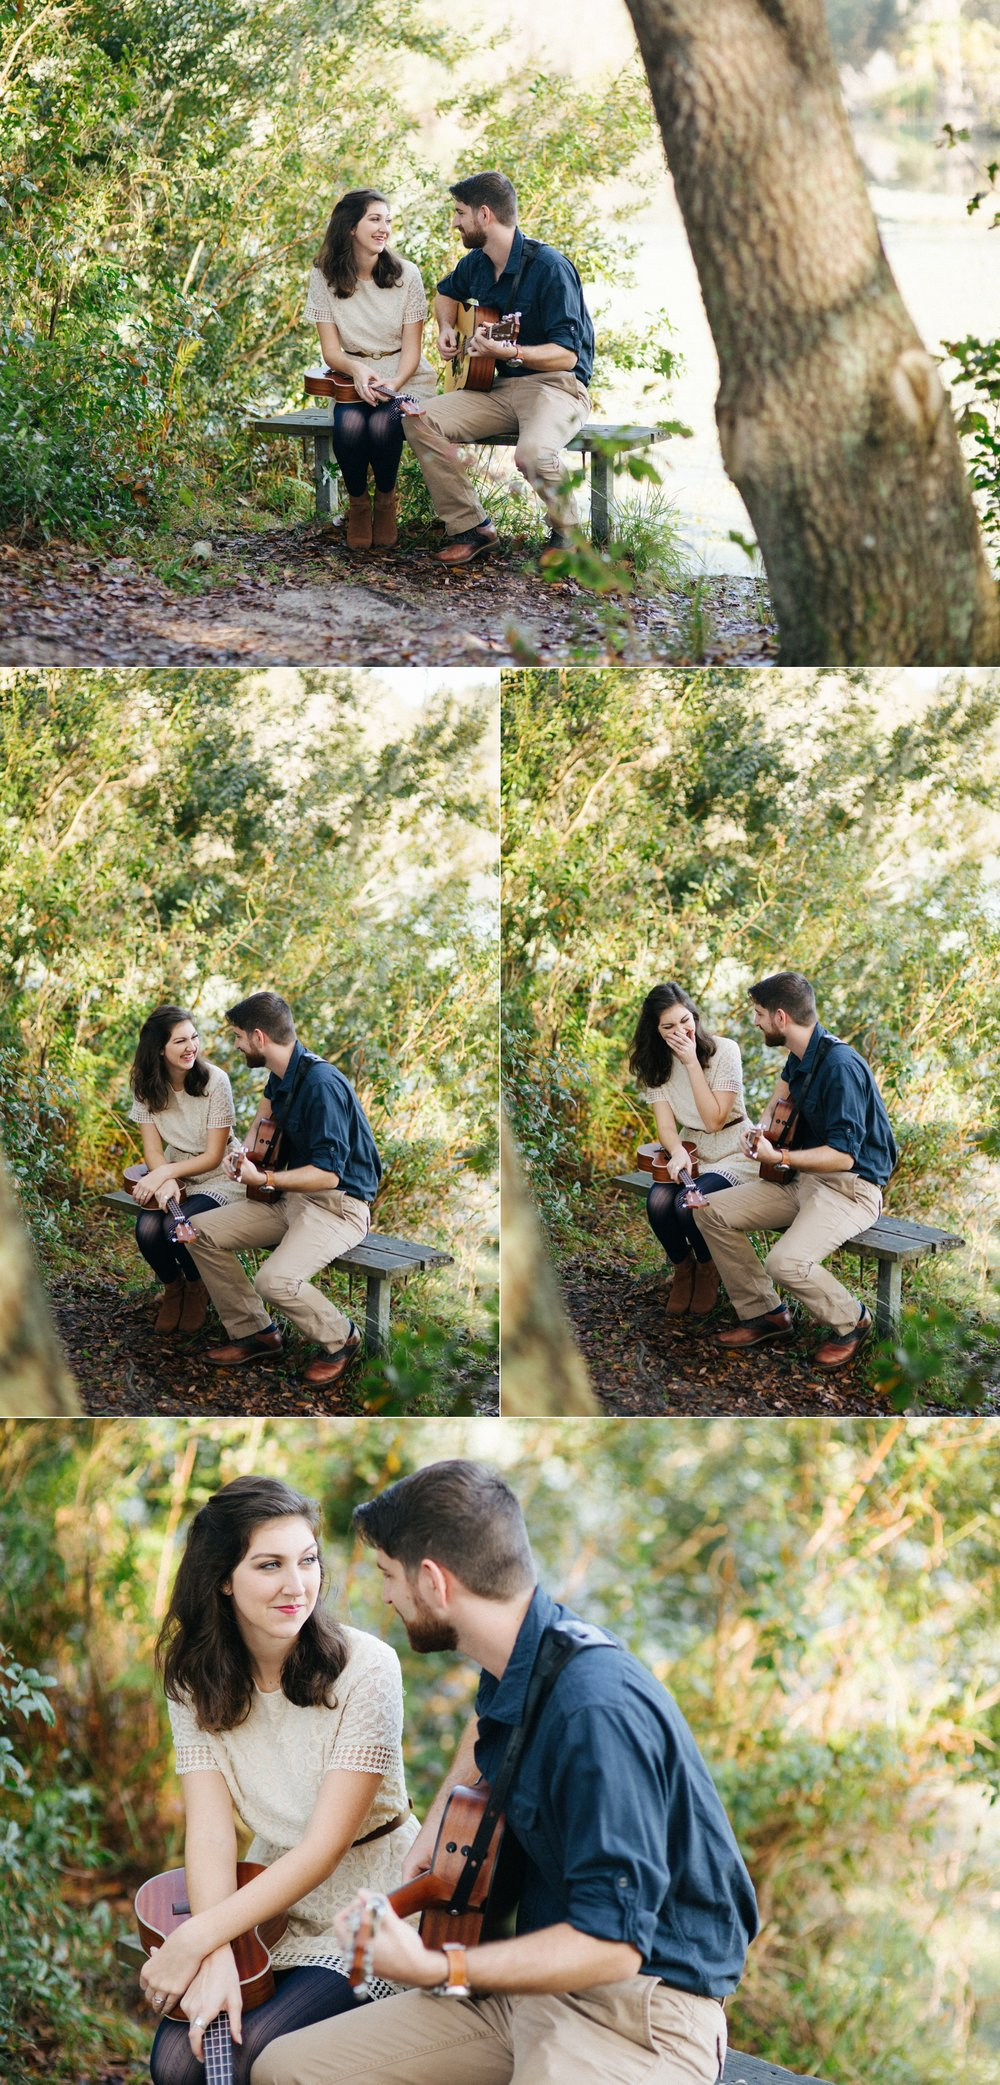 tampa engagement photographer jarrod kayleigh proposal jake and katie photography-011.jpg